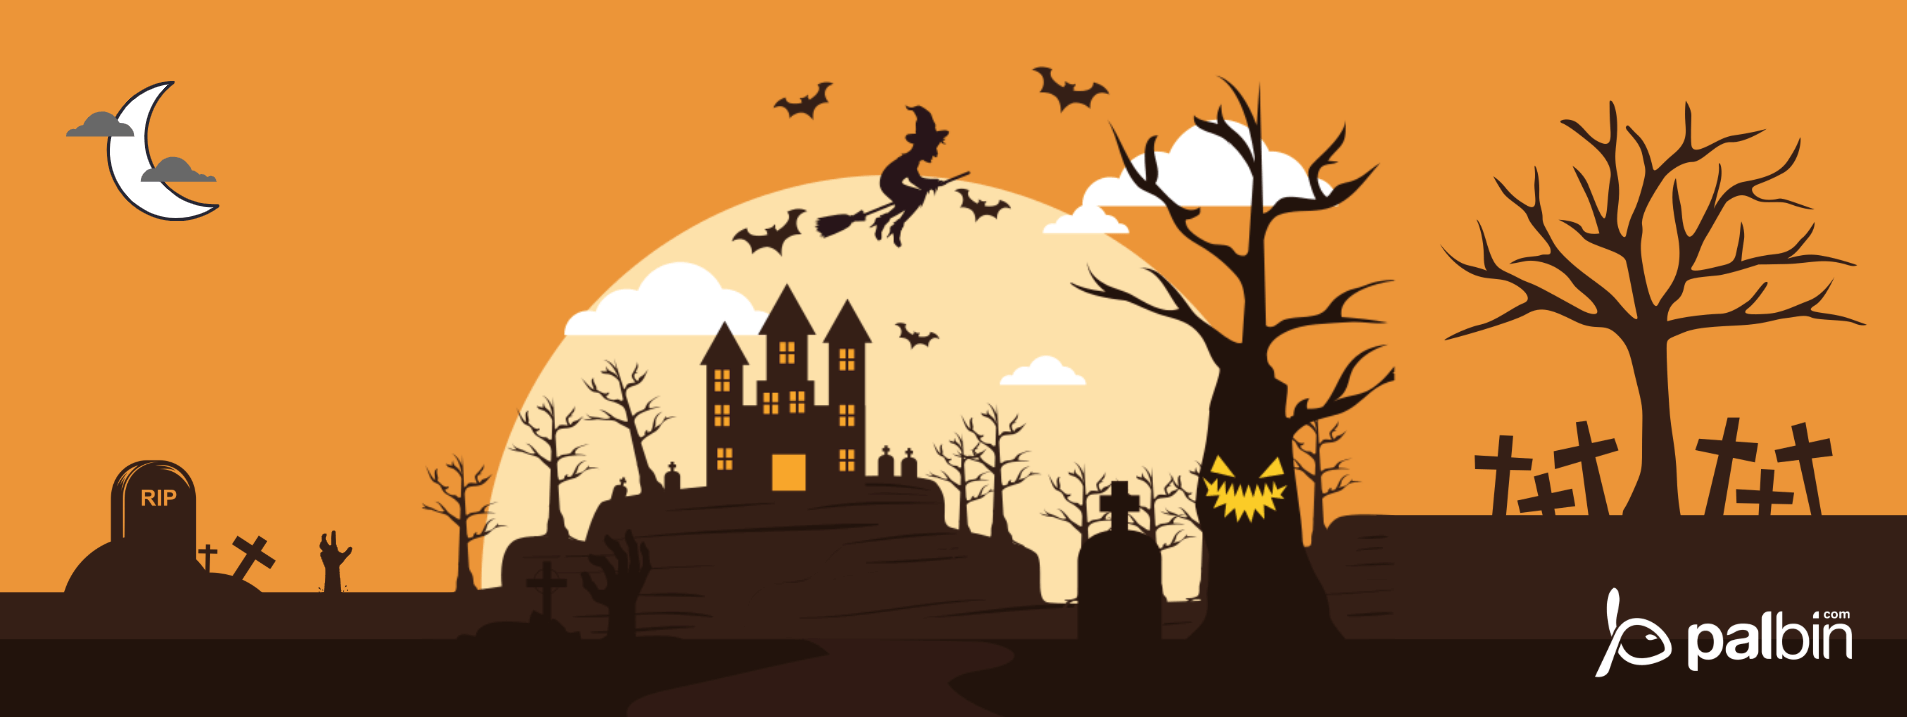 8 ideas de marketing para eCommerce en Halloween